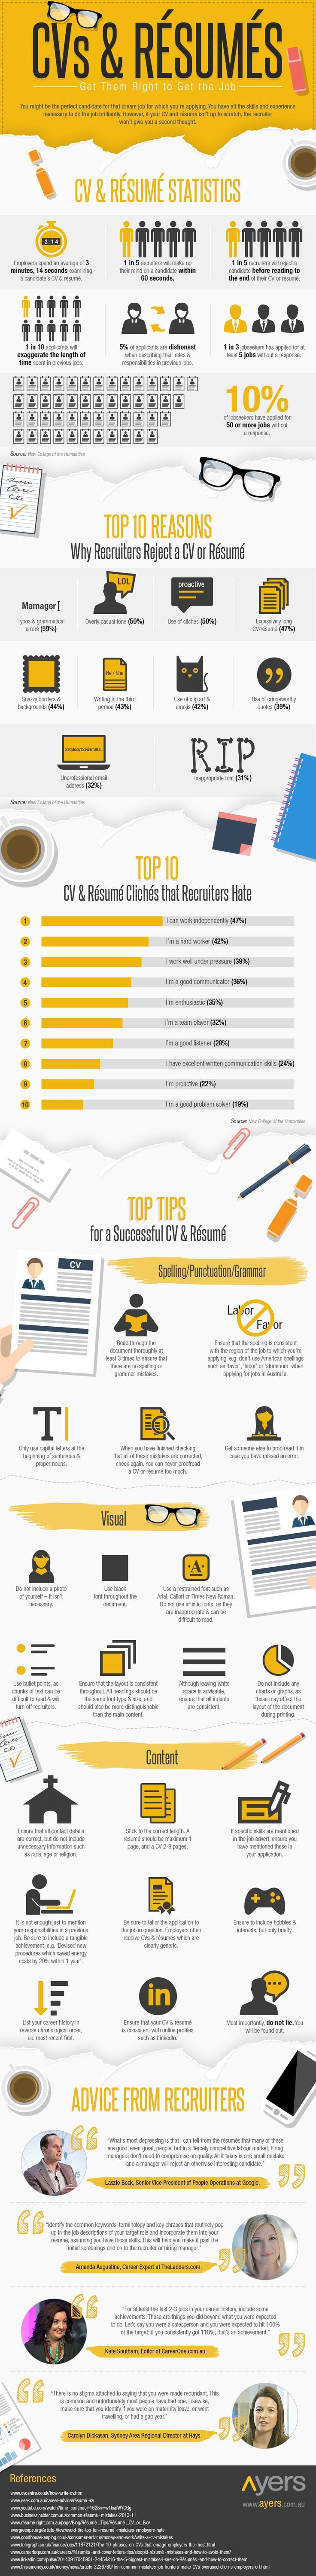 17 best ideas about resume writing resume resume 17 best ideas about resume writing resume resume help and resume writing tips